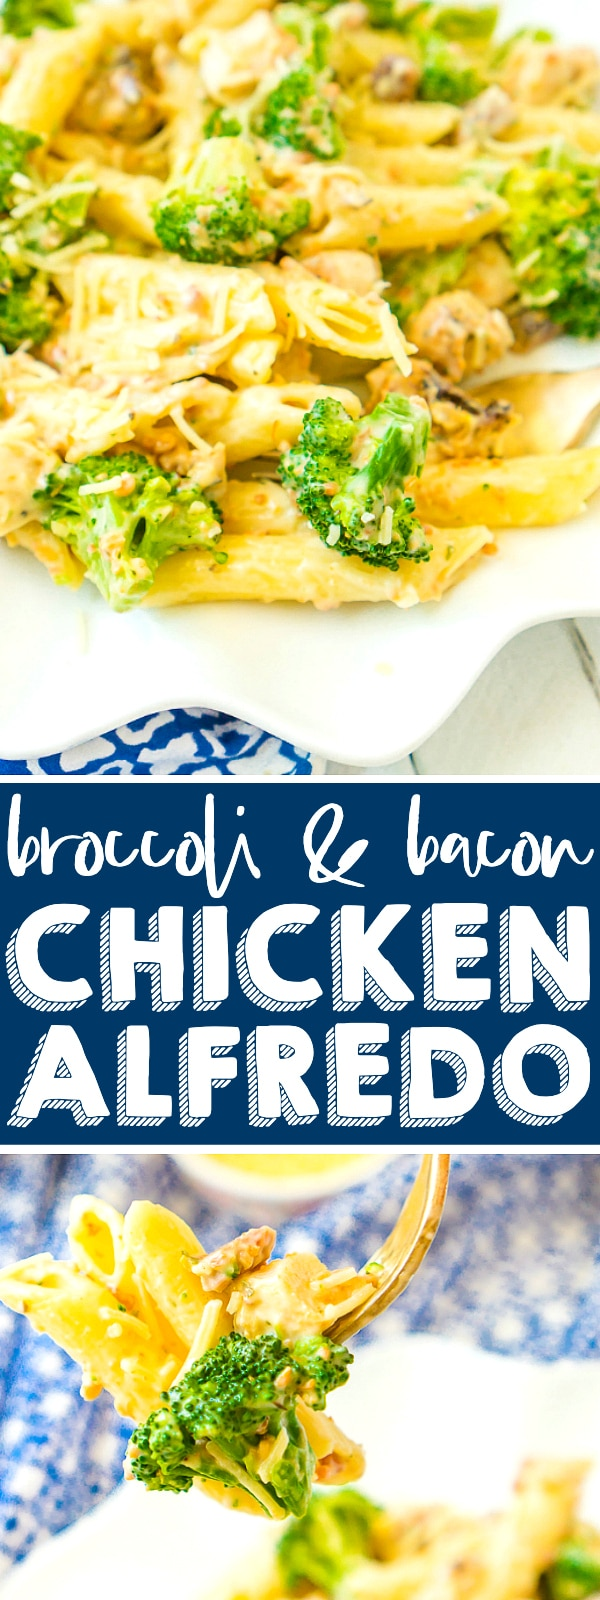 This creamy Bacon Broccoli Chicken Alfredo Pasta dinner is easily tossed together for a delicious pasta the whole family will love! Works well hot from the oven for Sunday night dinner or cold from the fridge as a pasta salad and lunch idea!